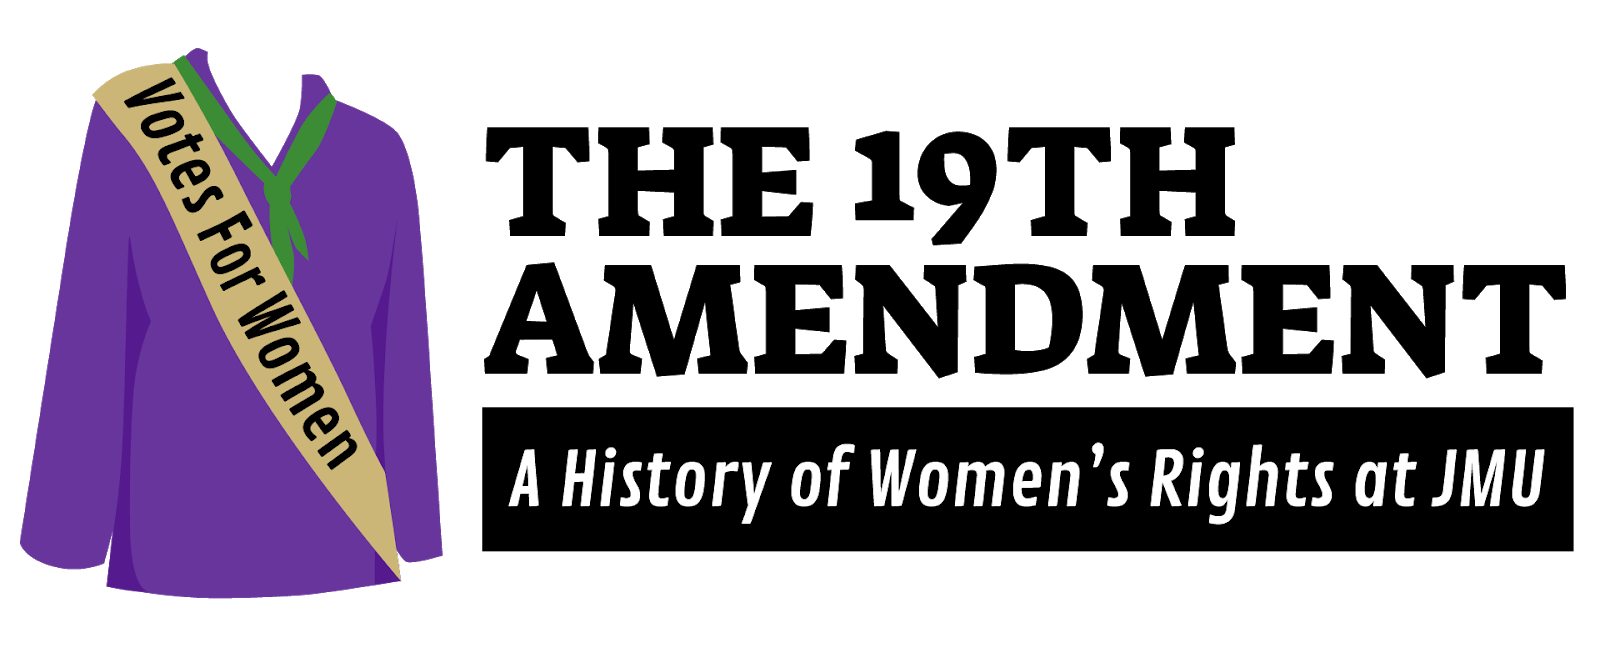 The 19th Amendment: A History of Women's Rights on Campus